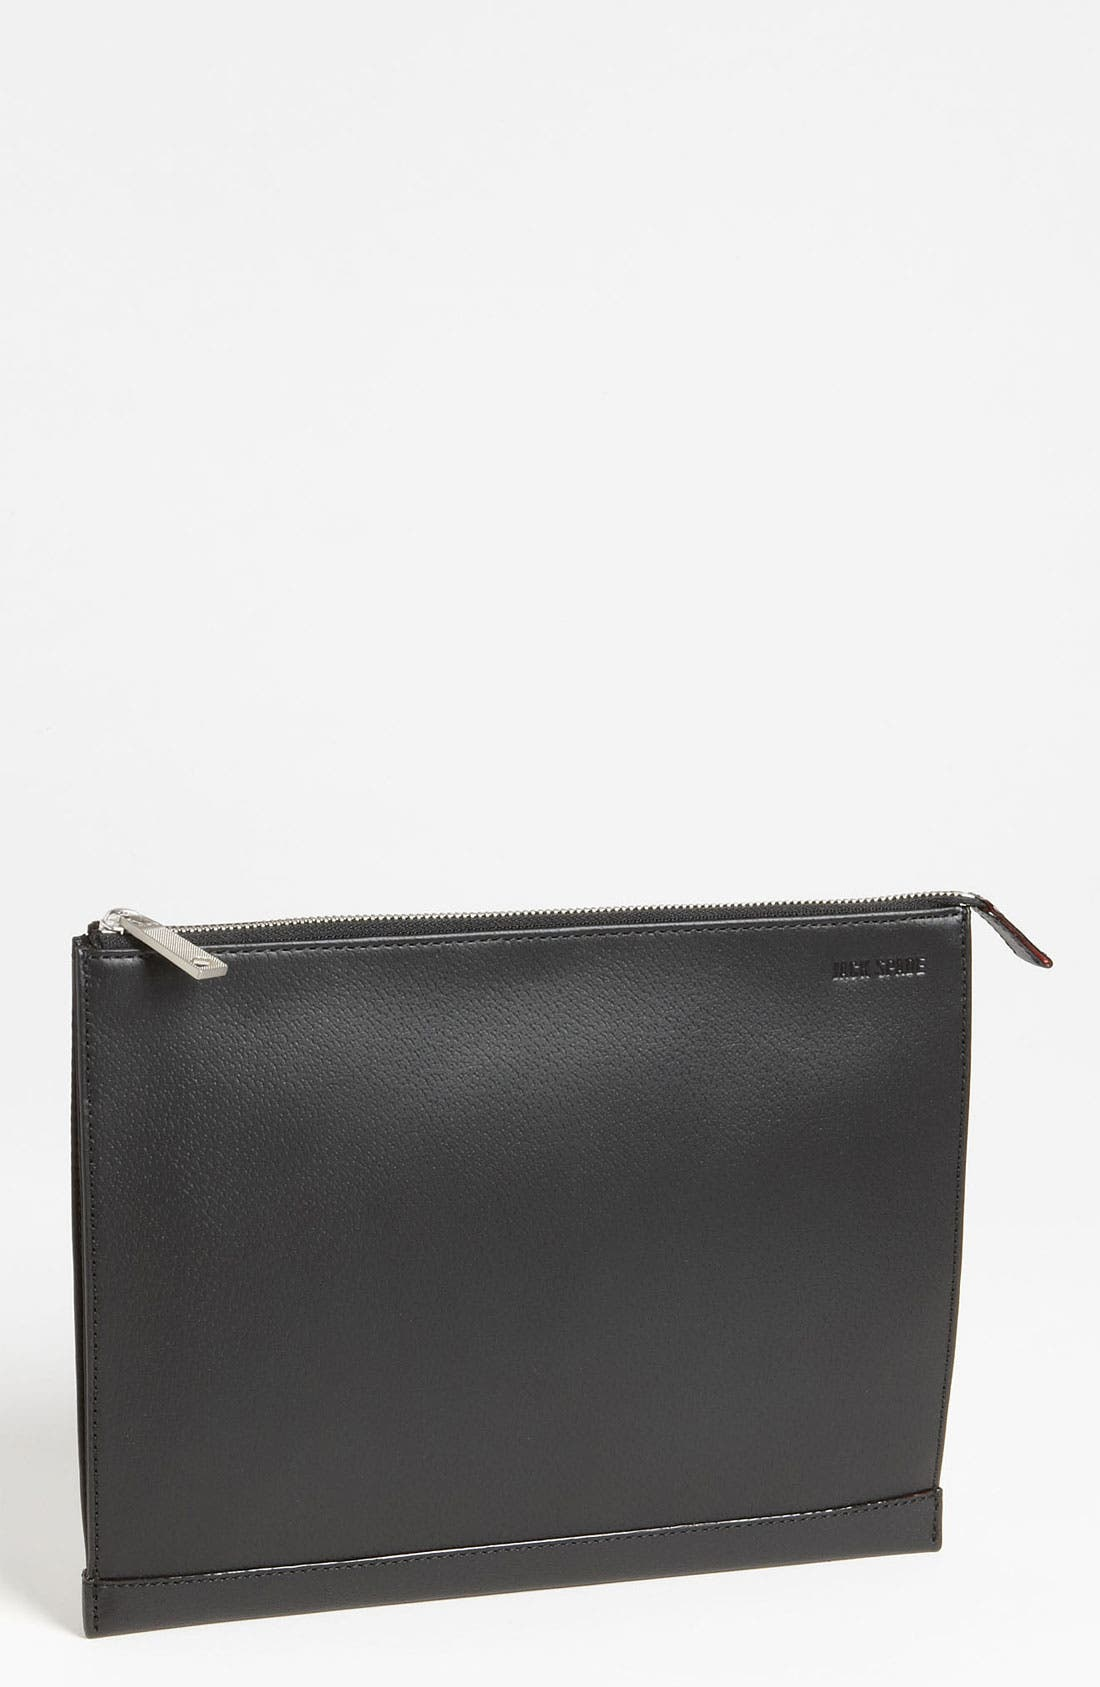 Main Image - Jack Spade 'Banker's Envelope - Small' iPad 2 & 3 Case